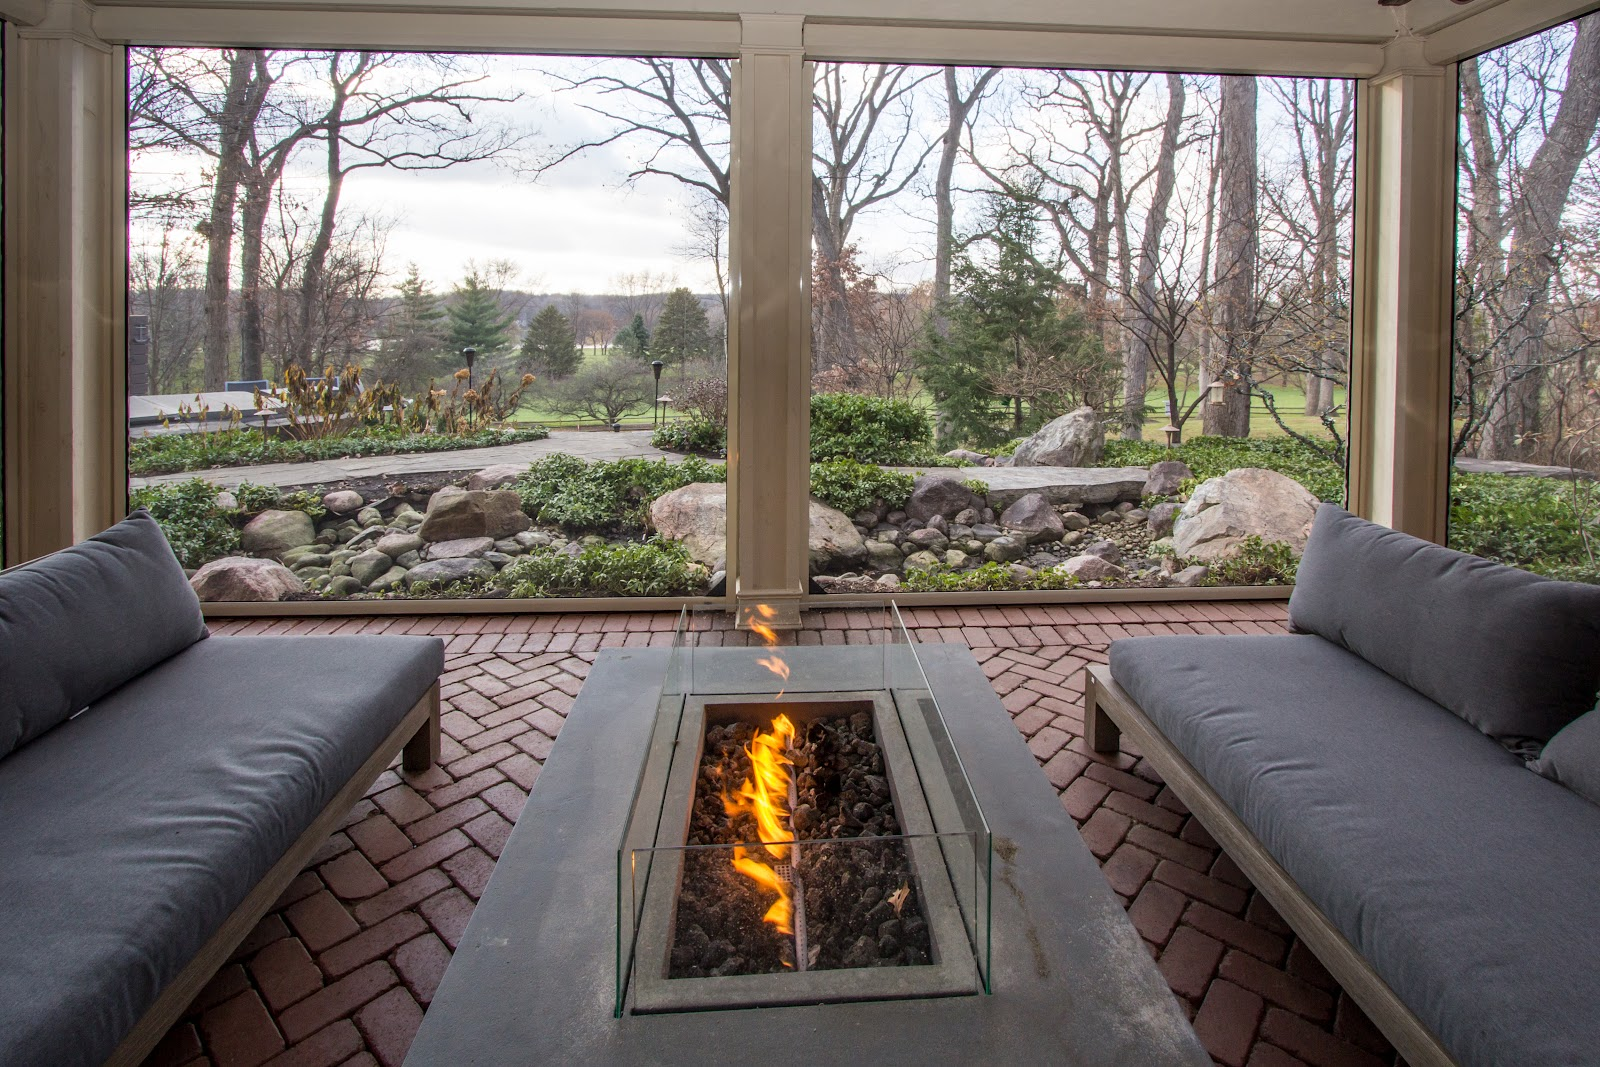 Herringbone brick-paved, indoor-outdoor patio with phantom screens and a fire table  overlooking a garden path